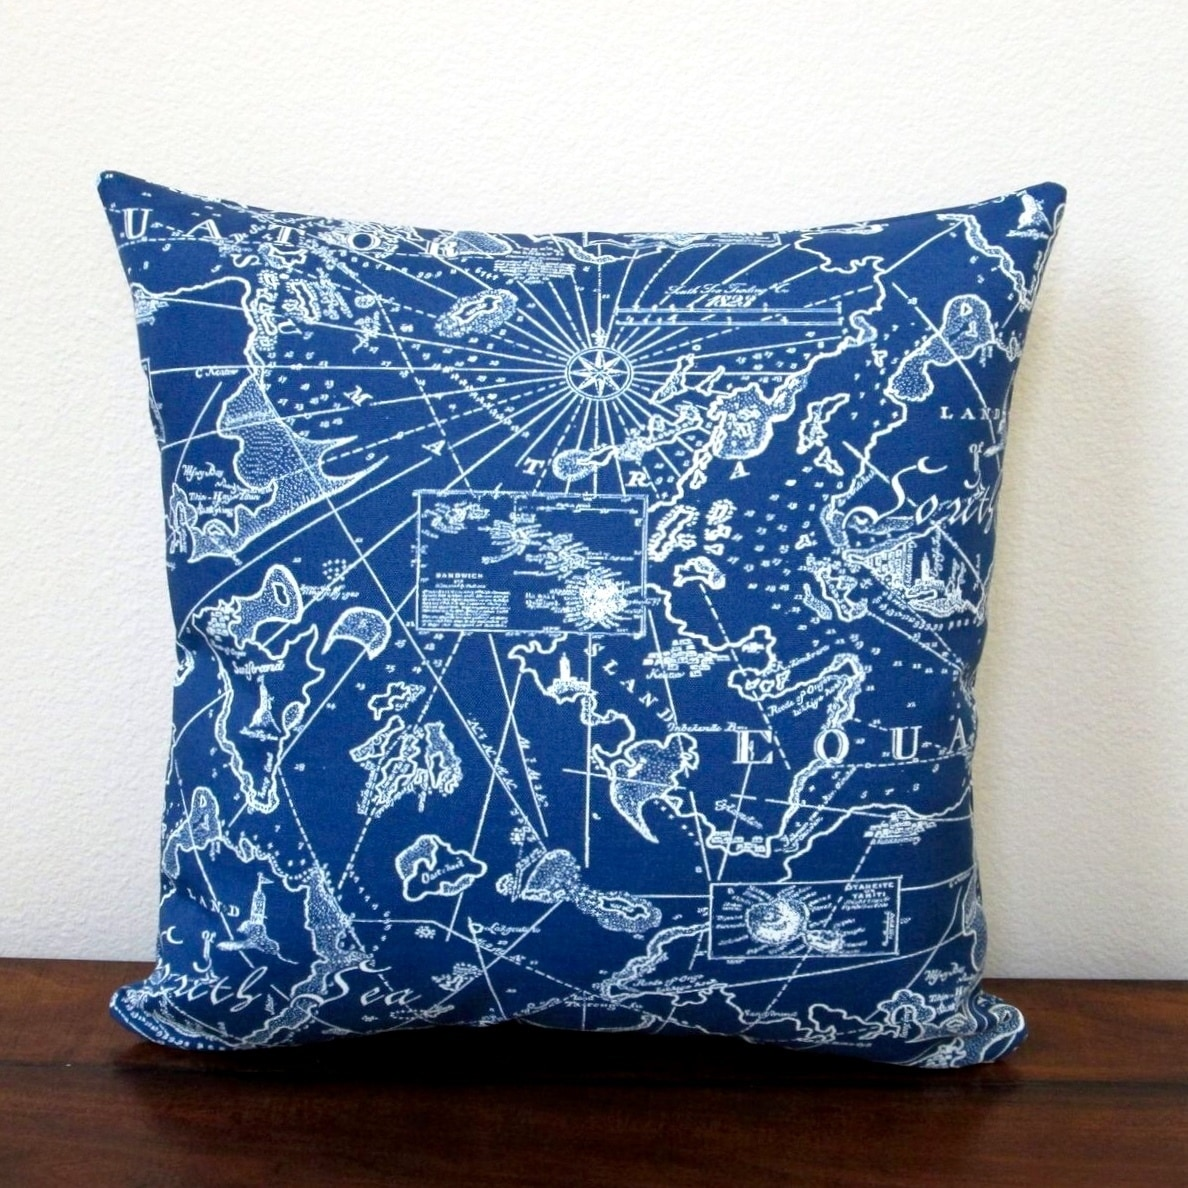 Pillows 18 Inch Indoor Outdoor Coastal Beach Home South Seas Nautical In Navy Blue Pillow Cover Only Set Of 2